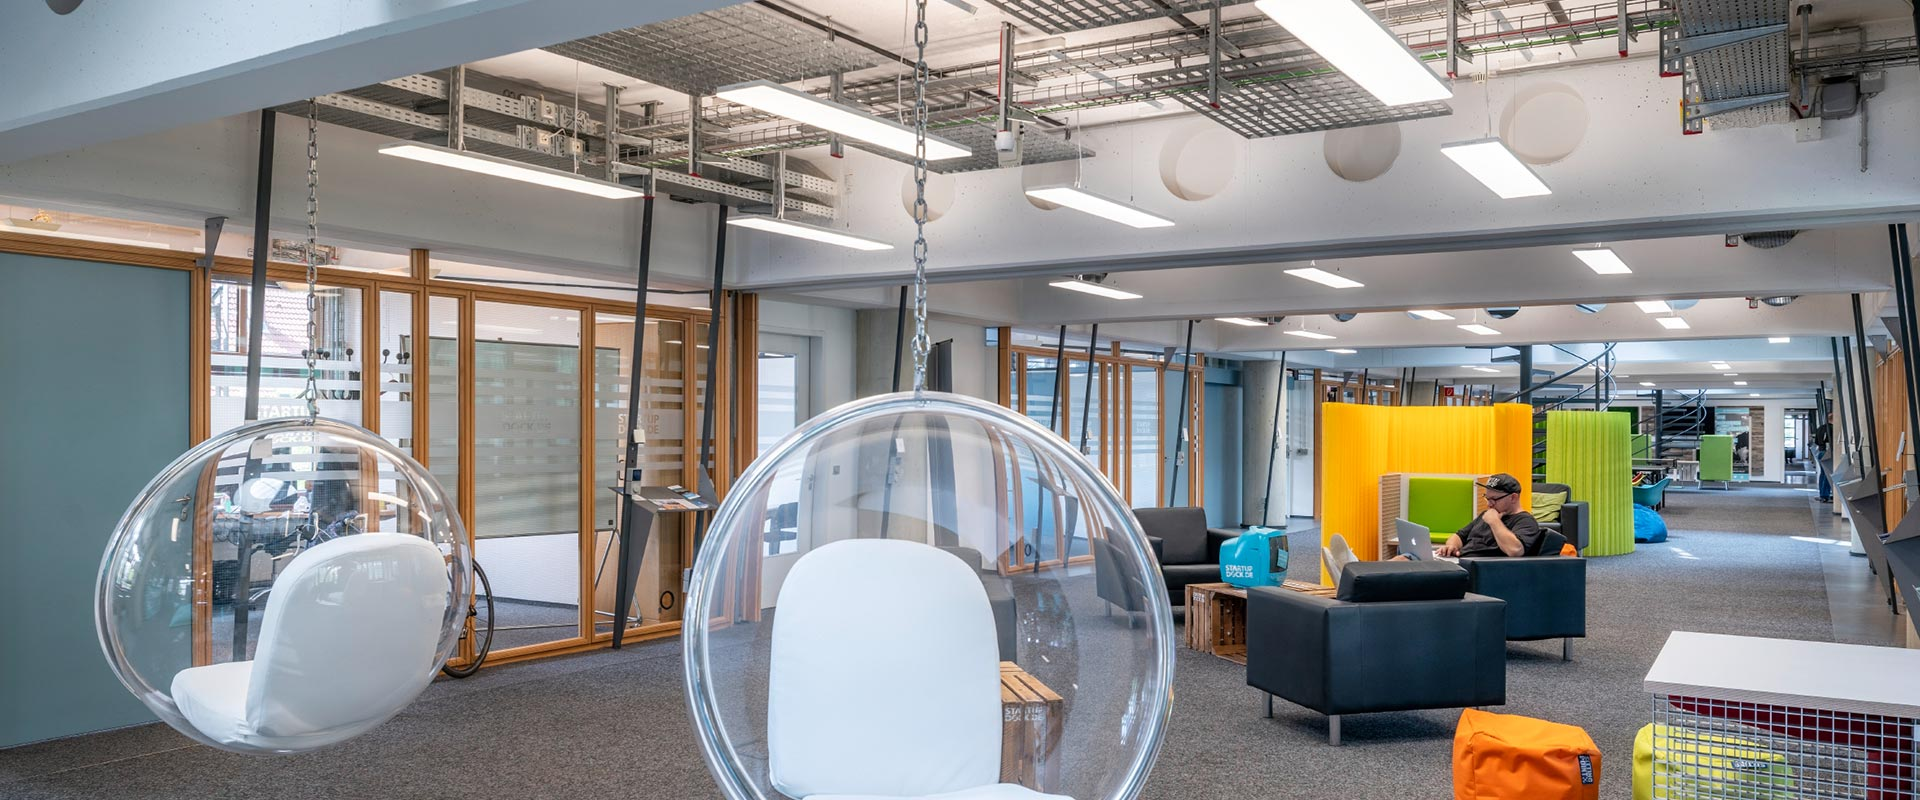 office space lighting large open space lighting for offices references space office applications trilux